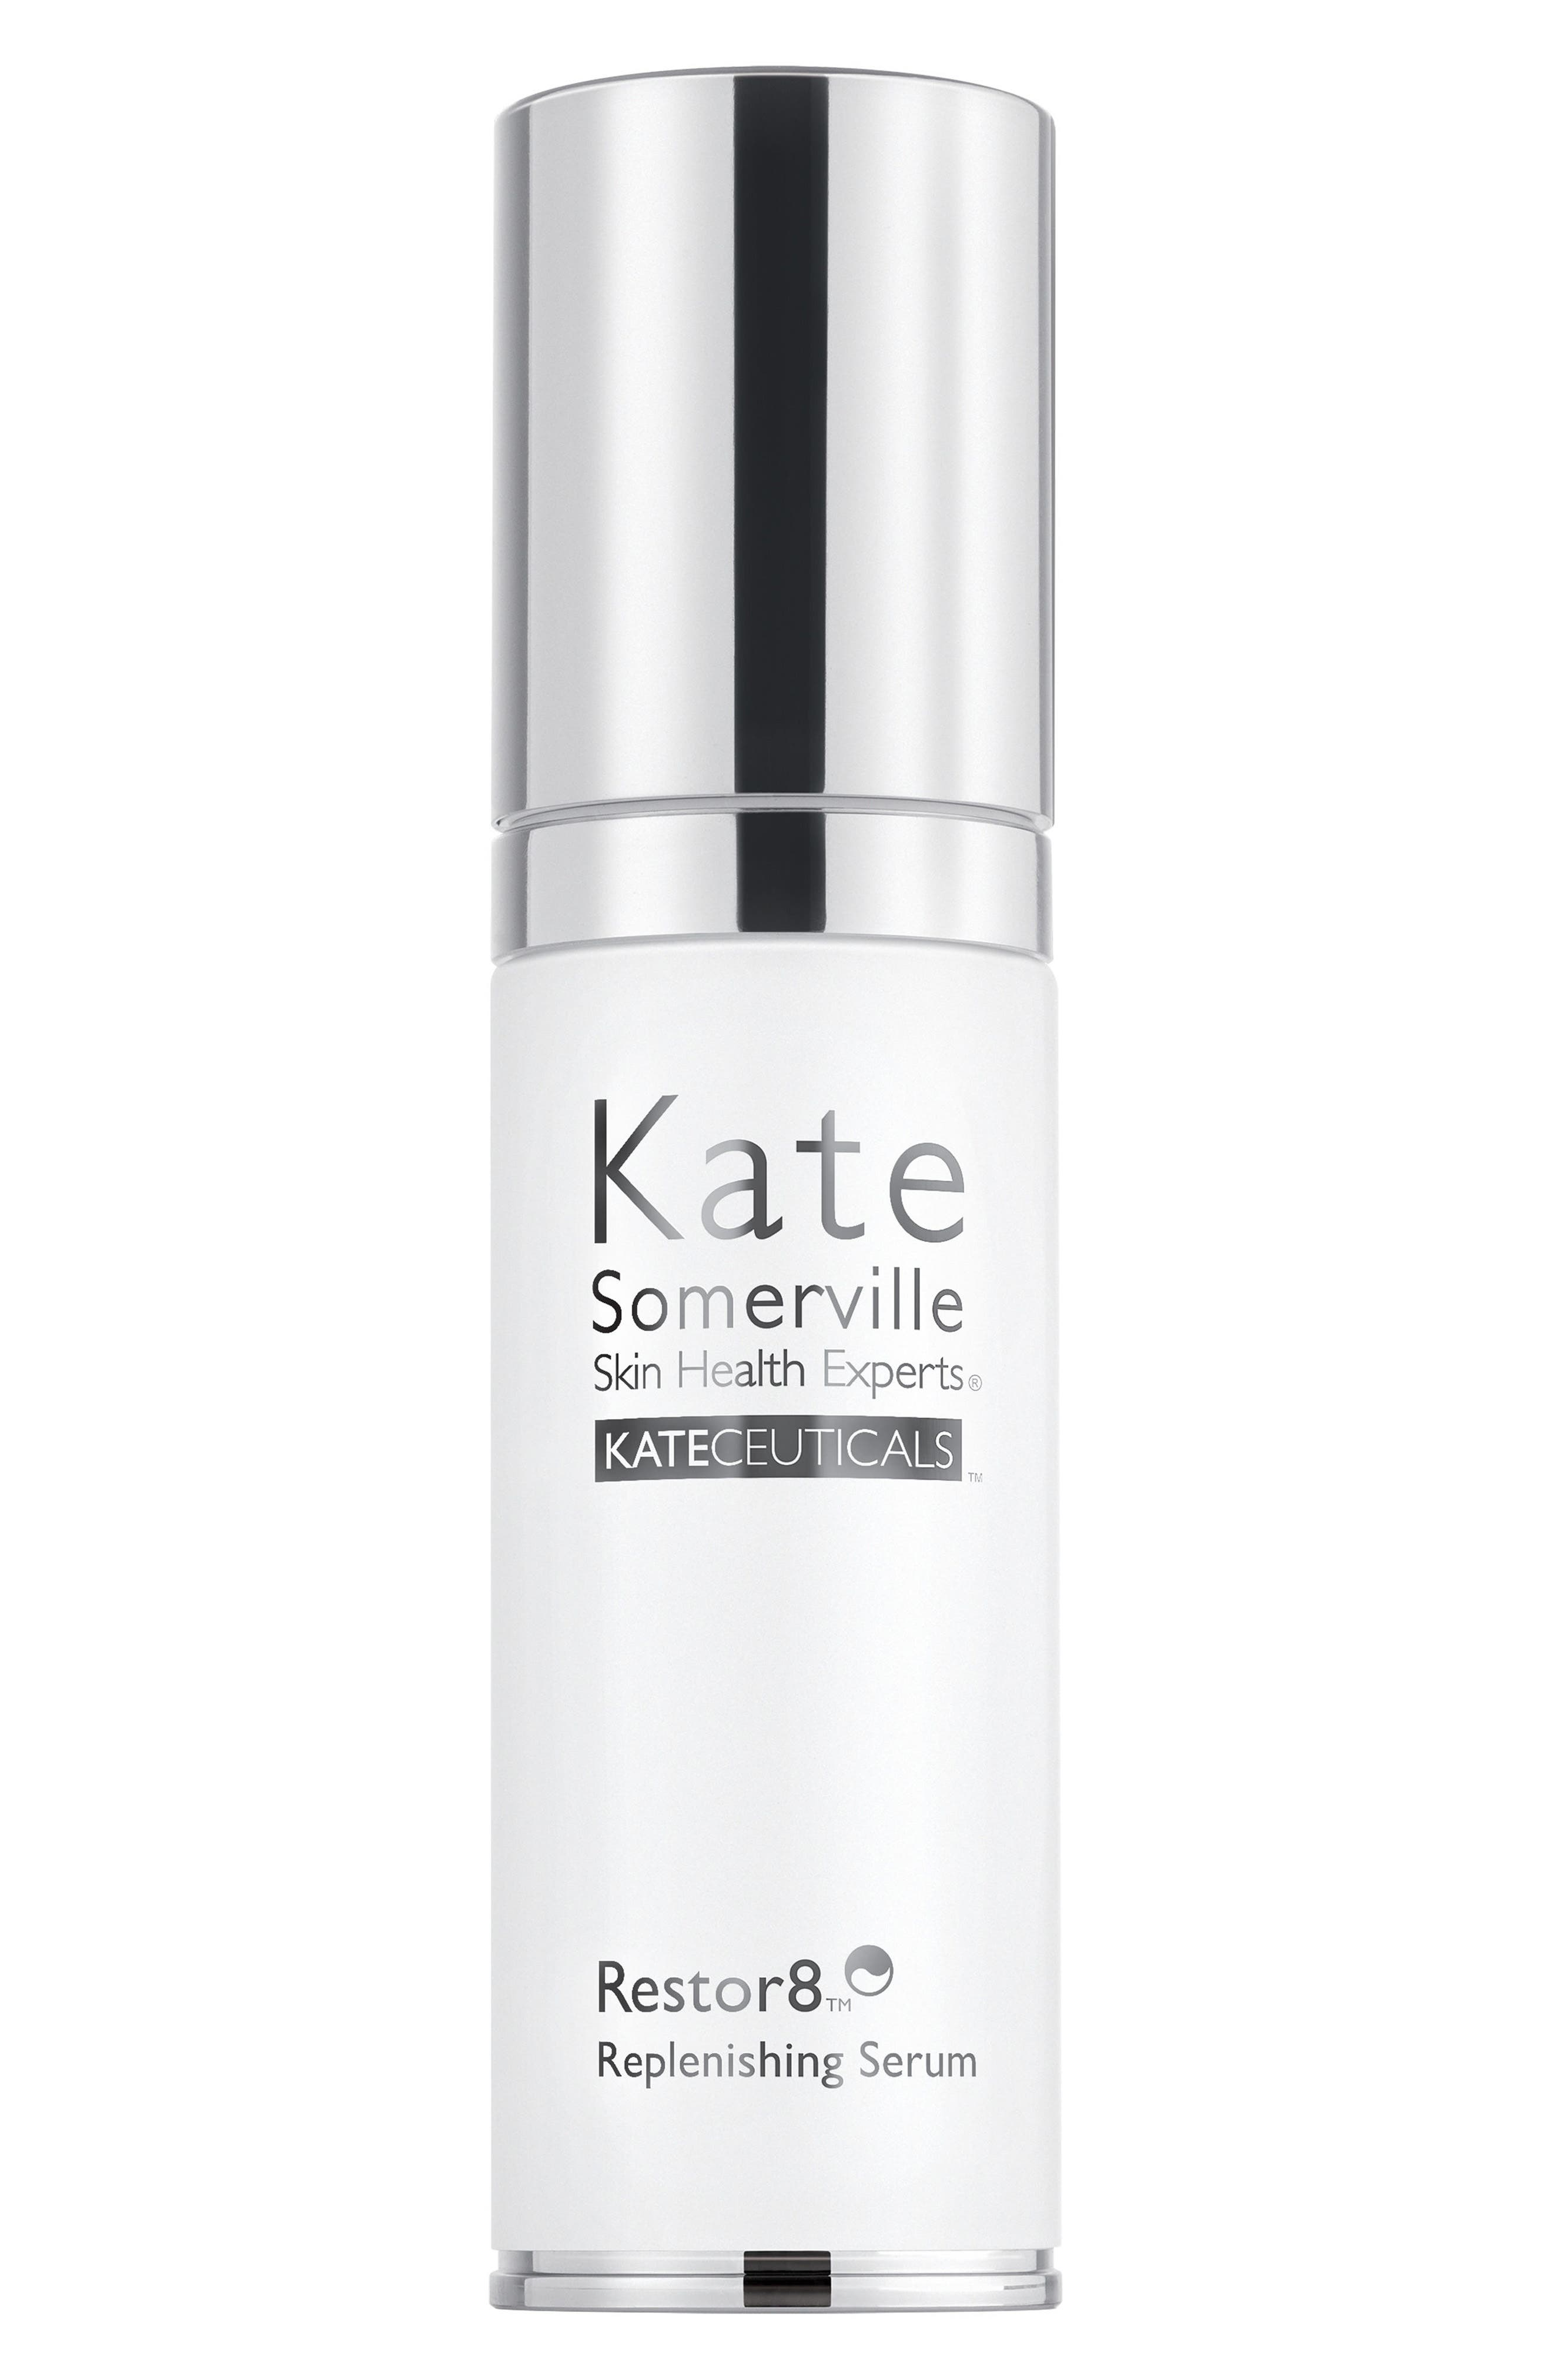 Kate Somerville® 'KateCeuticals™' Restor8 Replenishing Serum